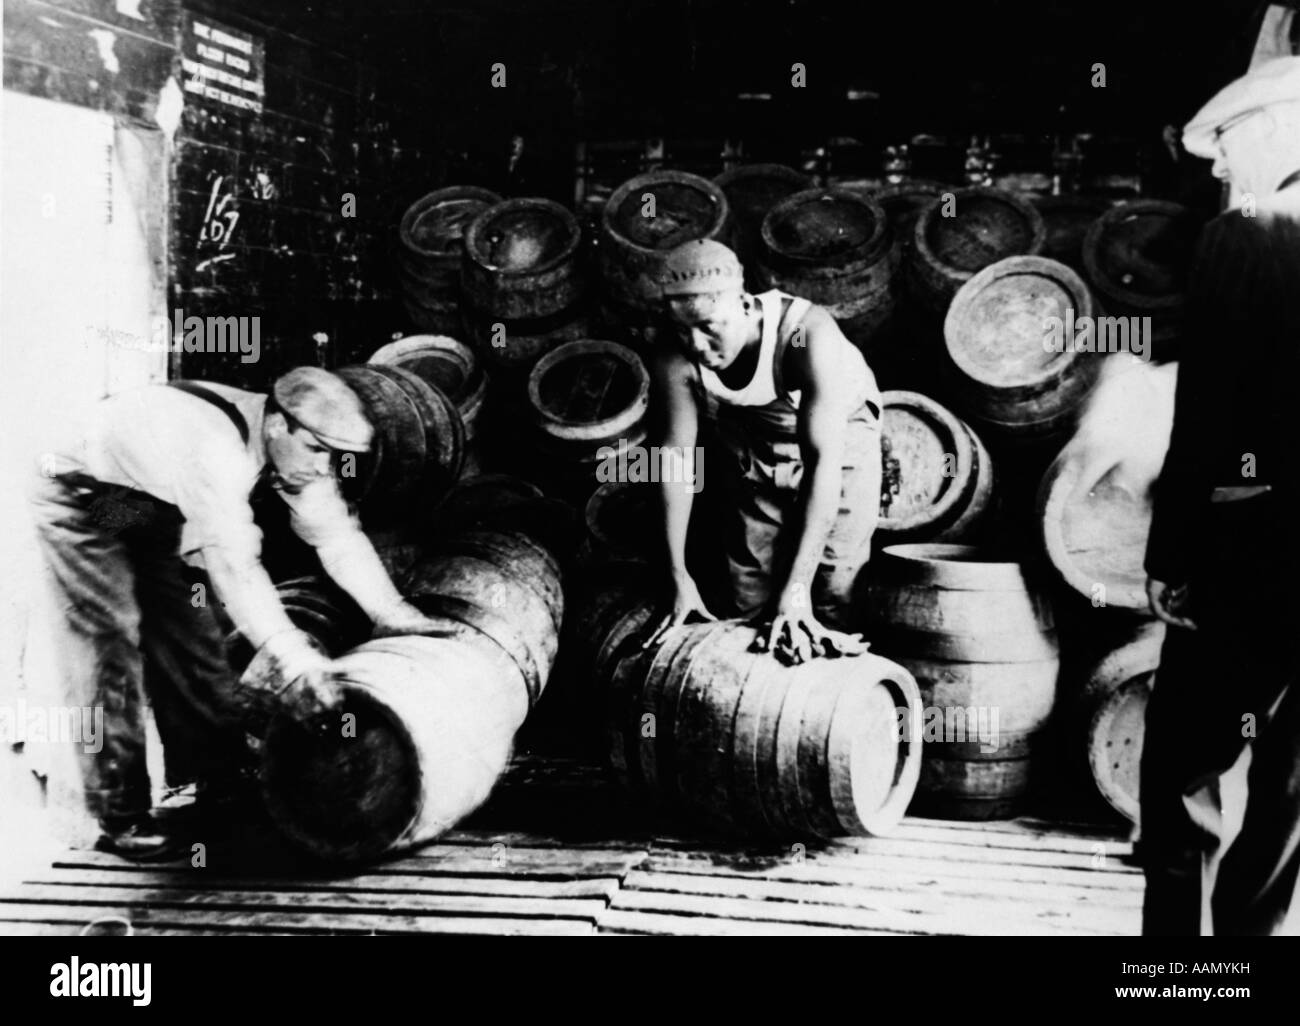 1920s 1930s PROHIBITION LABORERS UNLOAD 200 KEGS OF BEER SEIZED BY FEDERAL AGENTS MIDDLETOWN NY USA - Stock Image